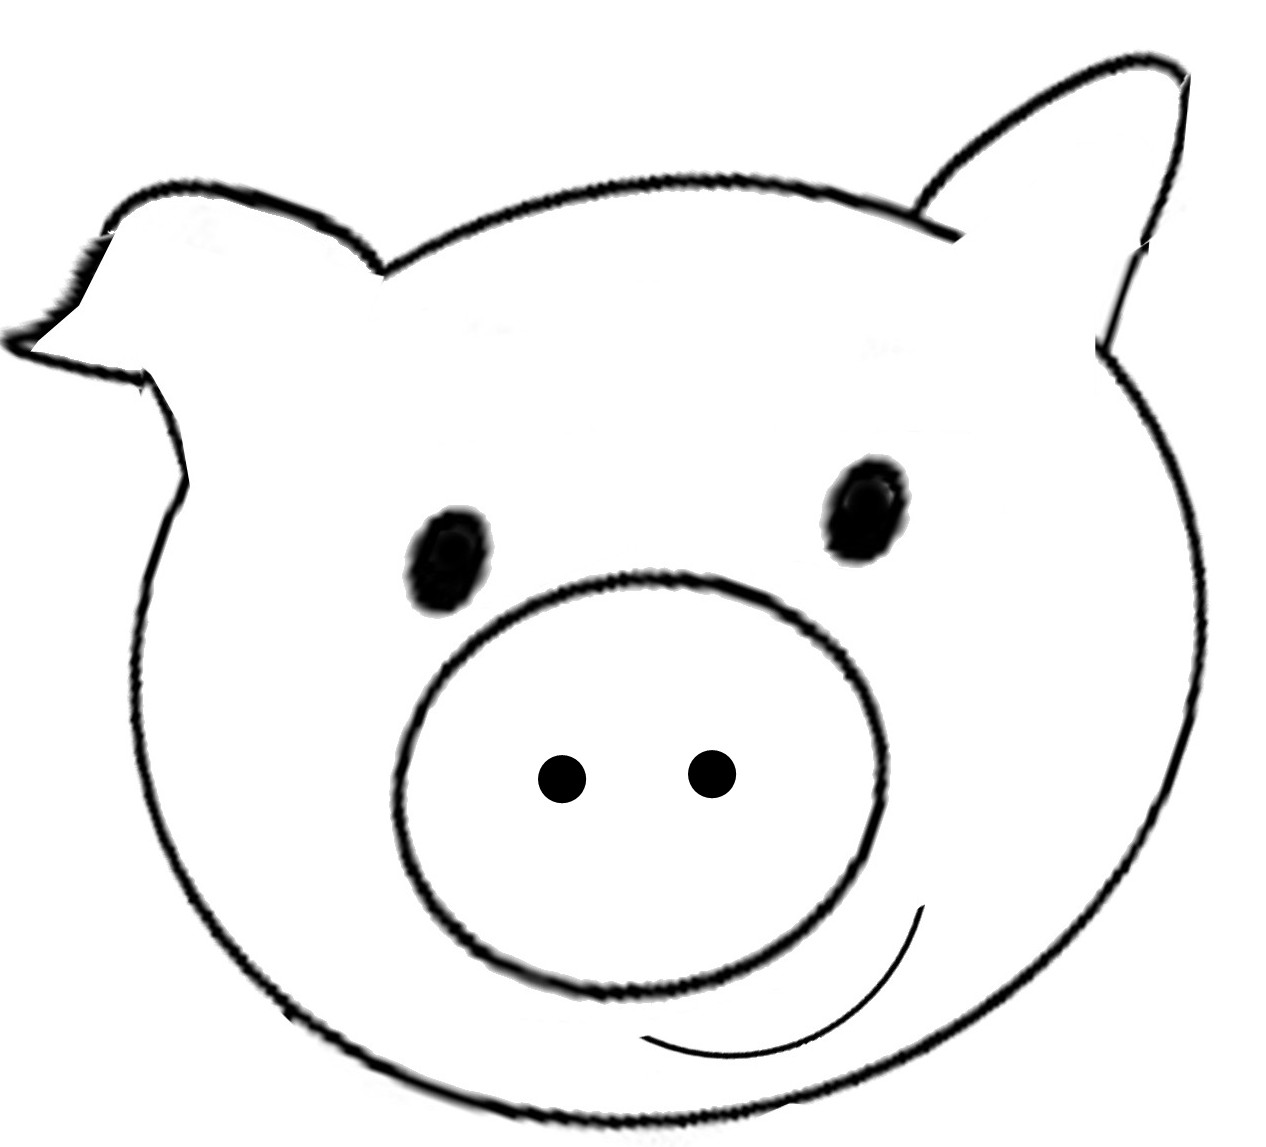 1266x1147 Pig Face Clipart Many Interesting Cliparts